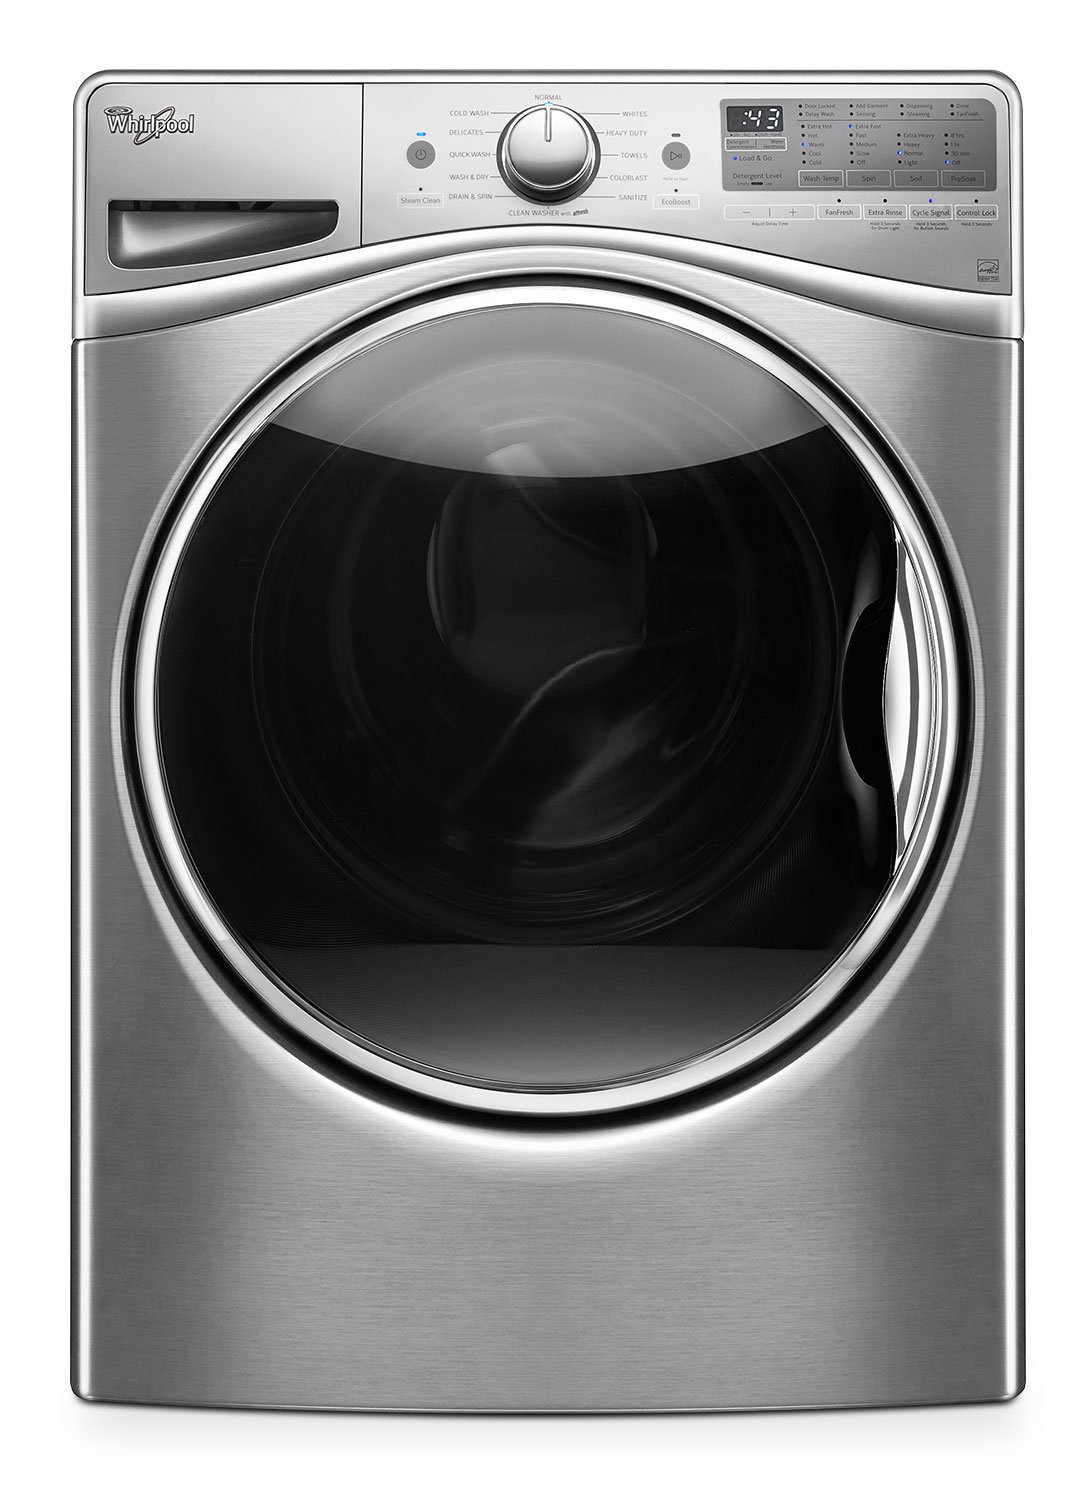 Washers and Dryers - Whirlpool Diamond Steel Front-Load Washer (5.2 Cu. Ft.IEC) - WFW92HEFU